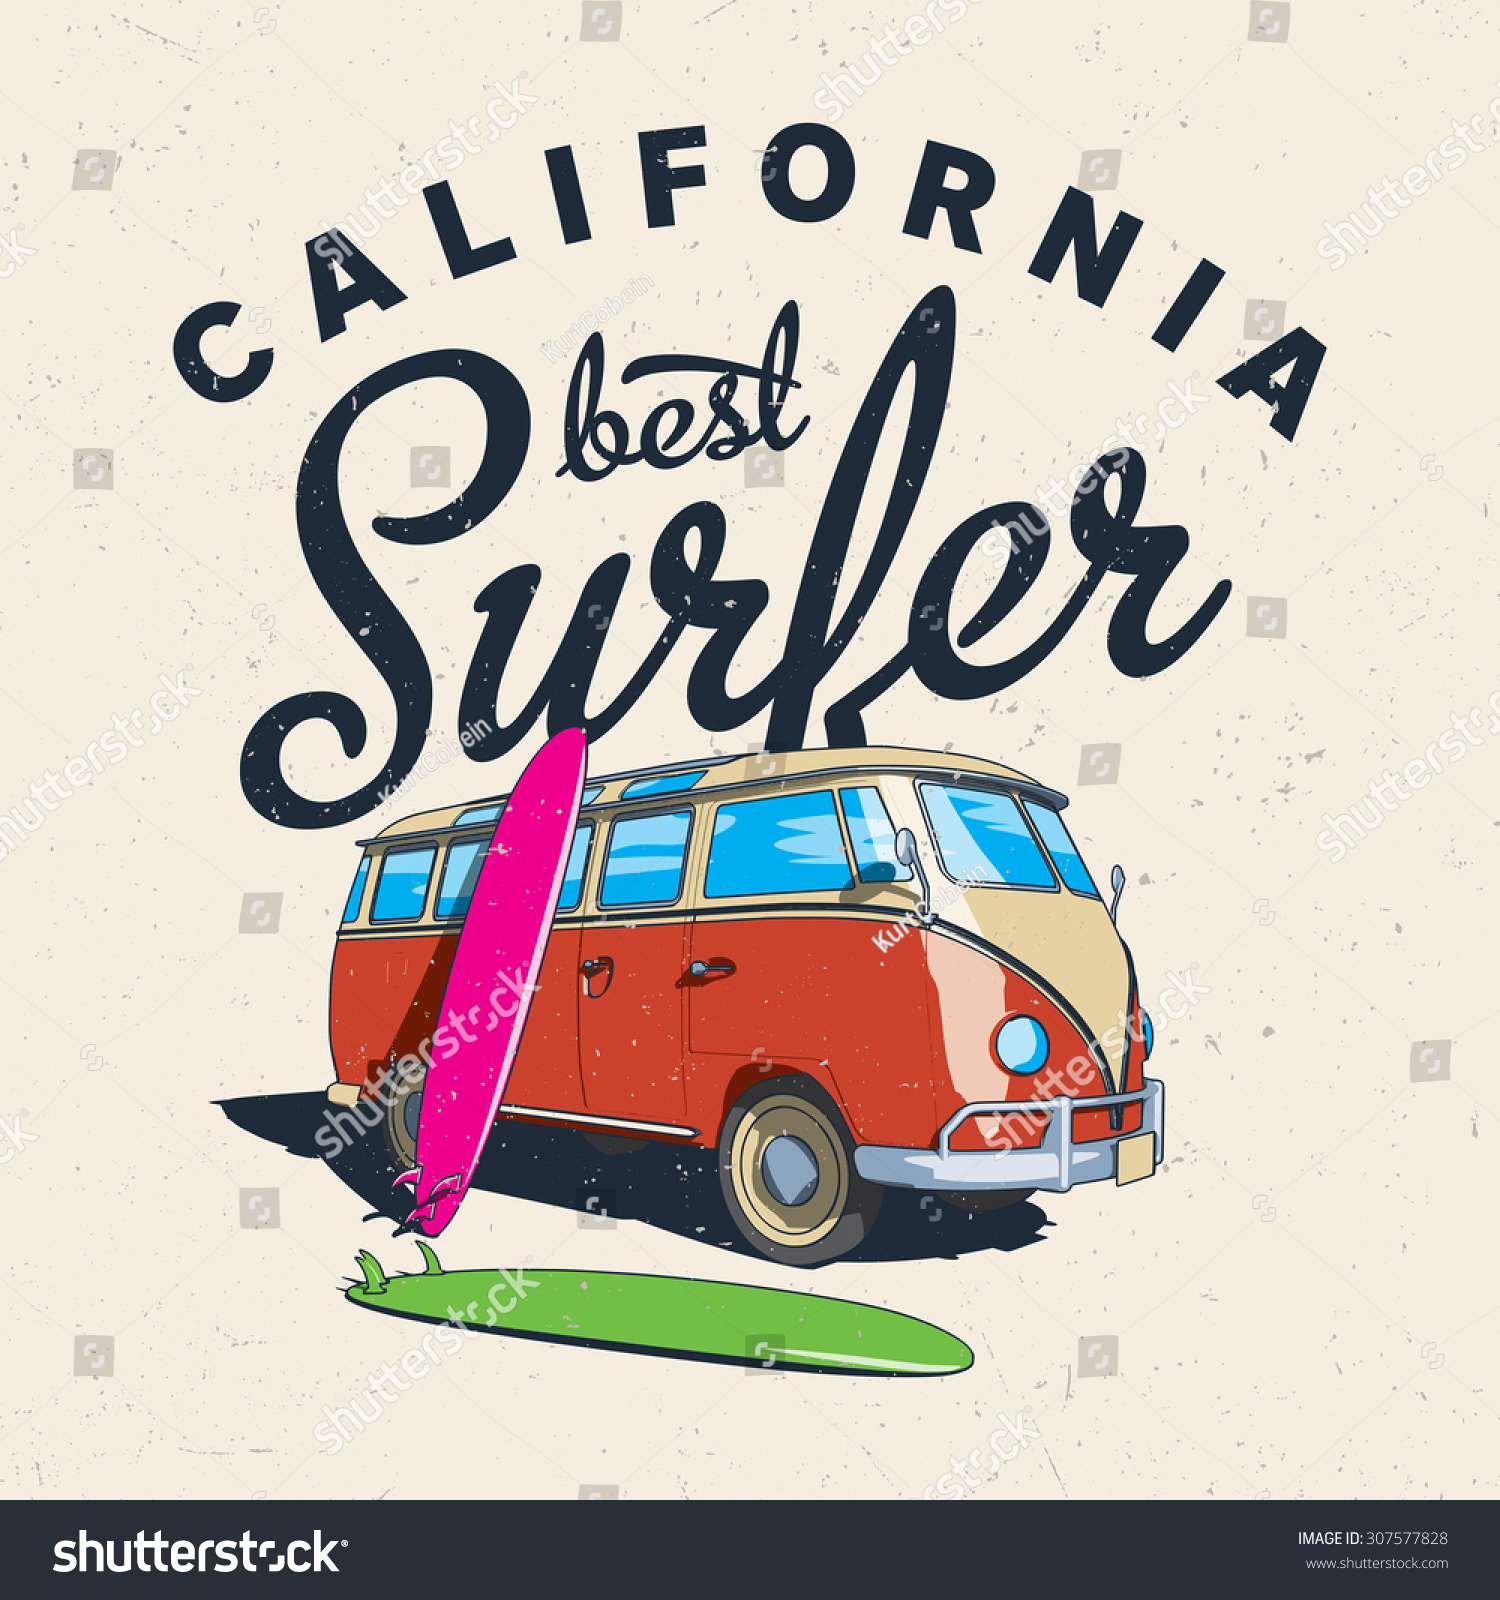 The Best Surfing In California Label Design For Posters, T